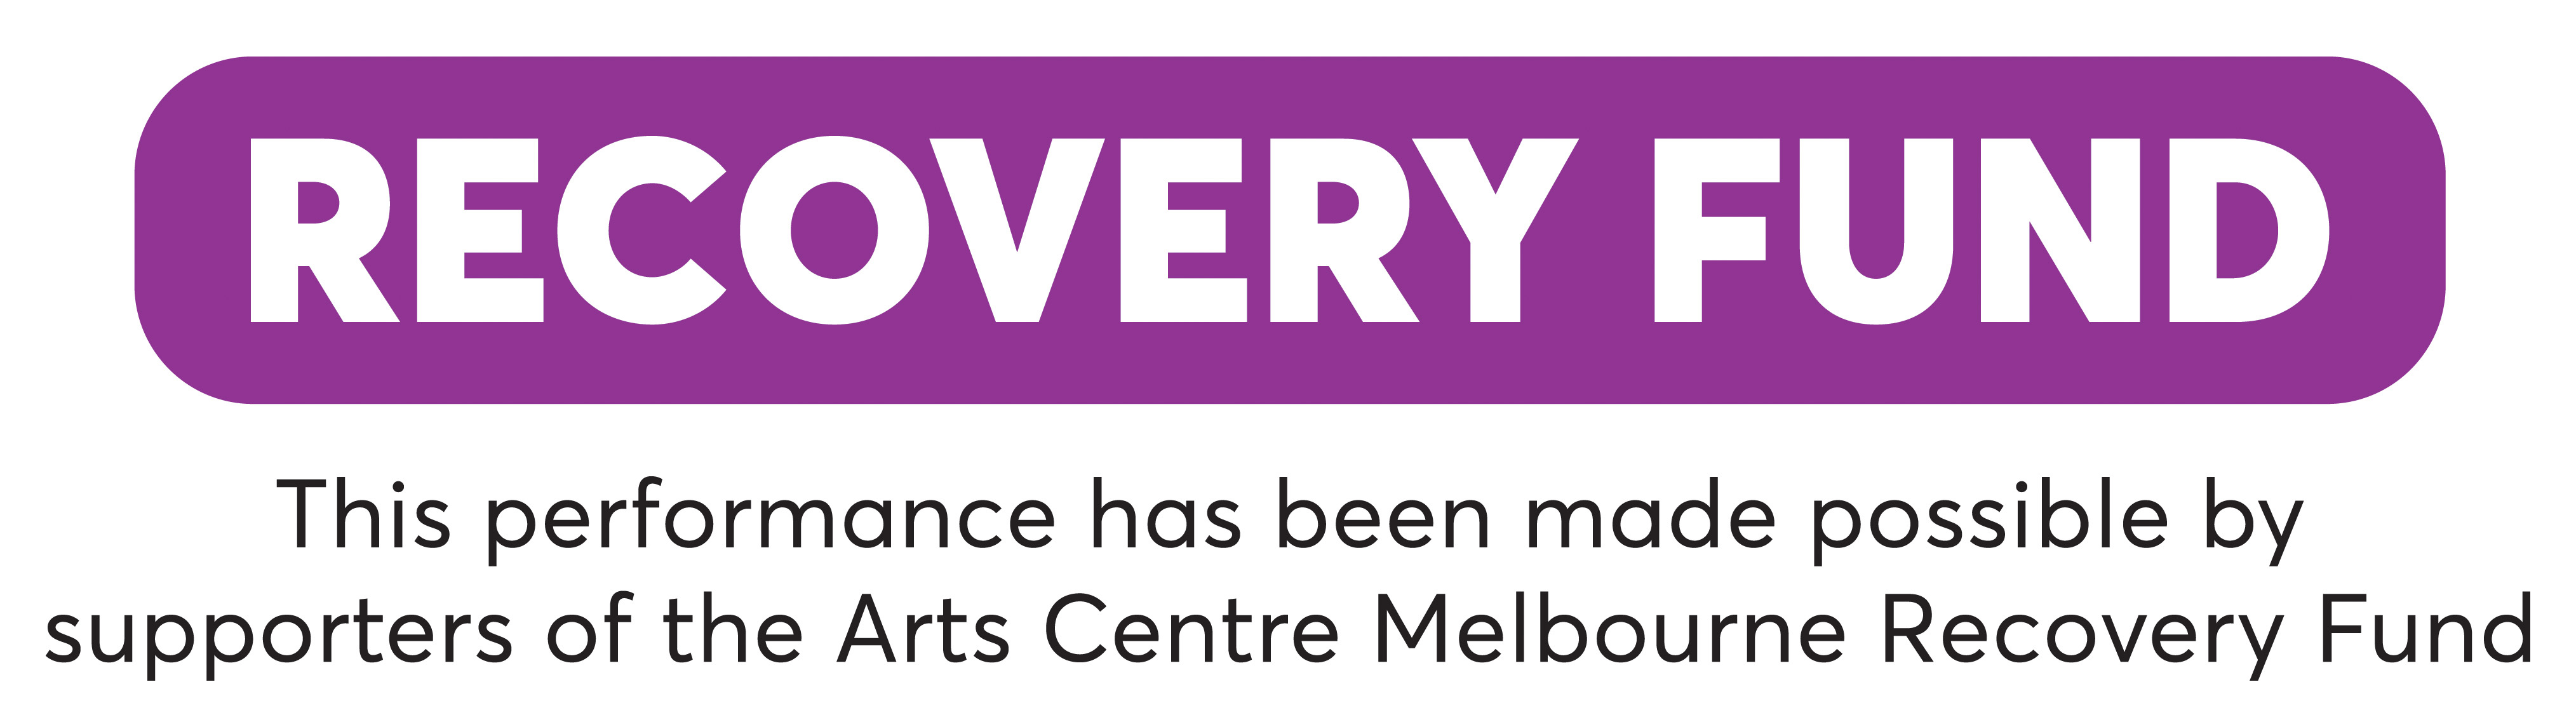 Arts Centre Melbourne Recovery Fund logo